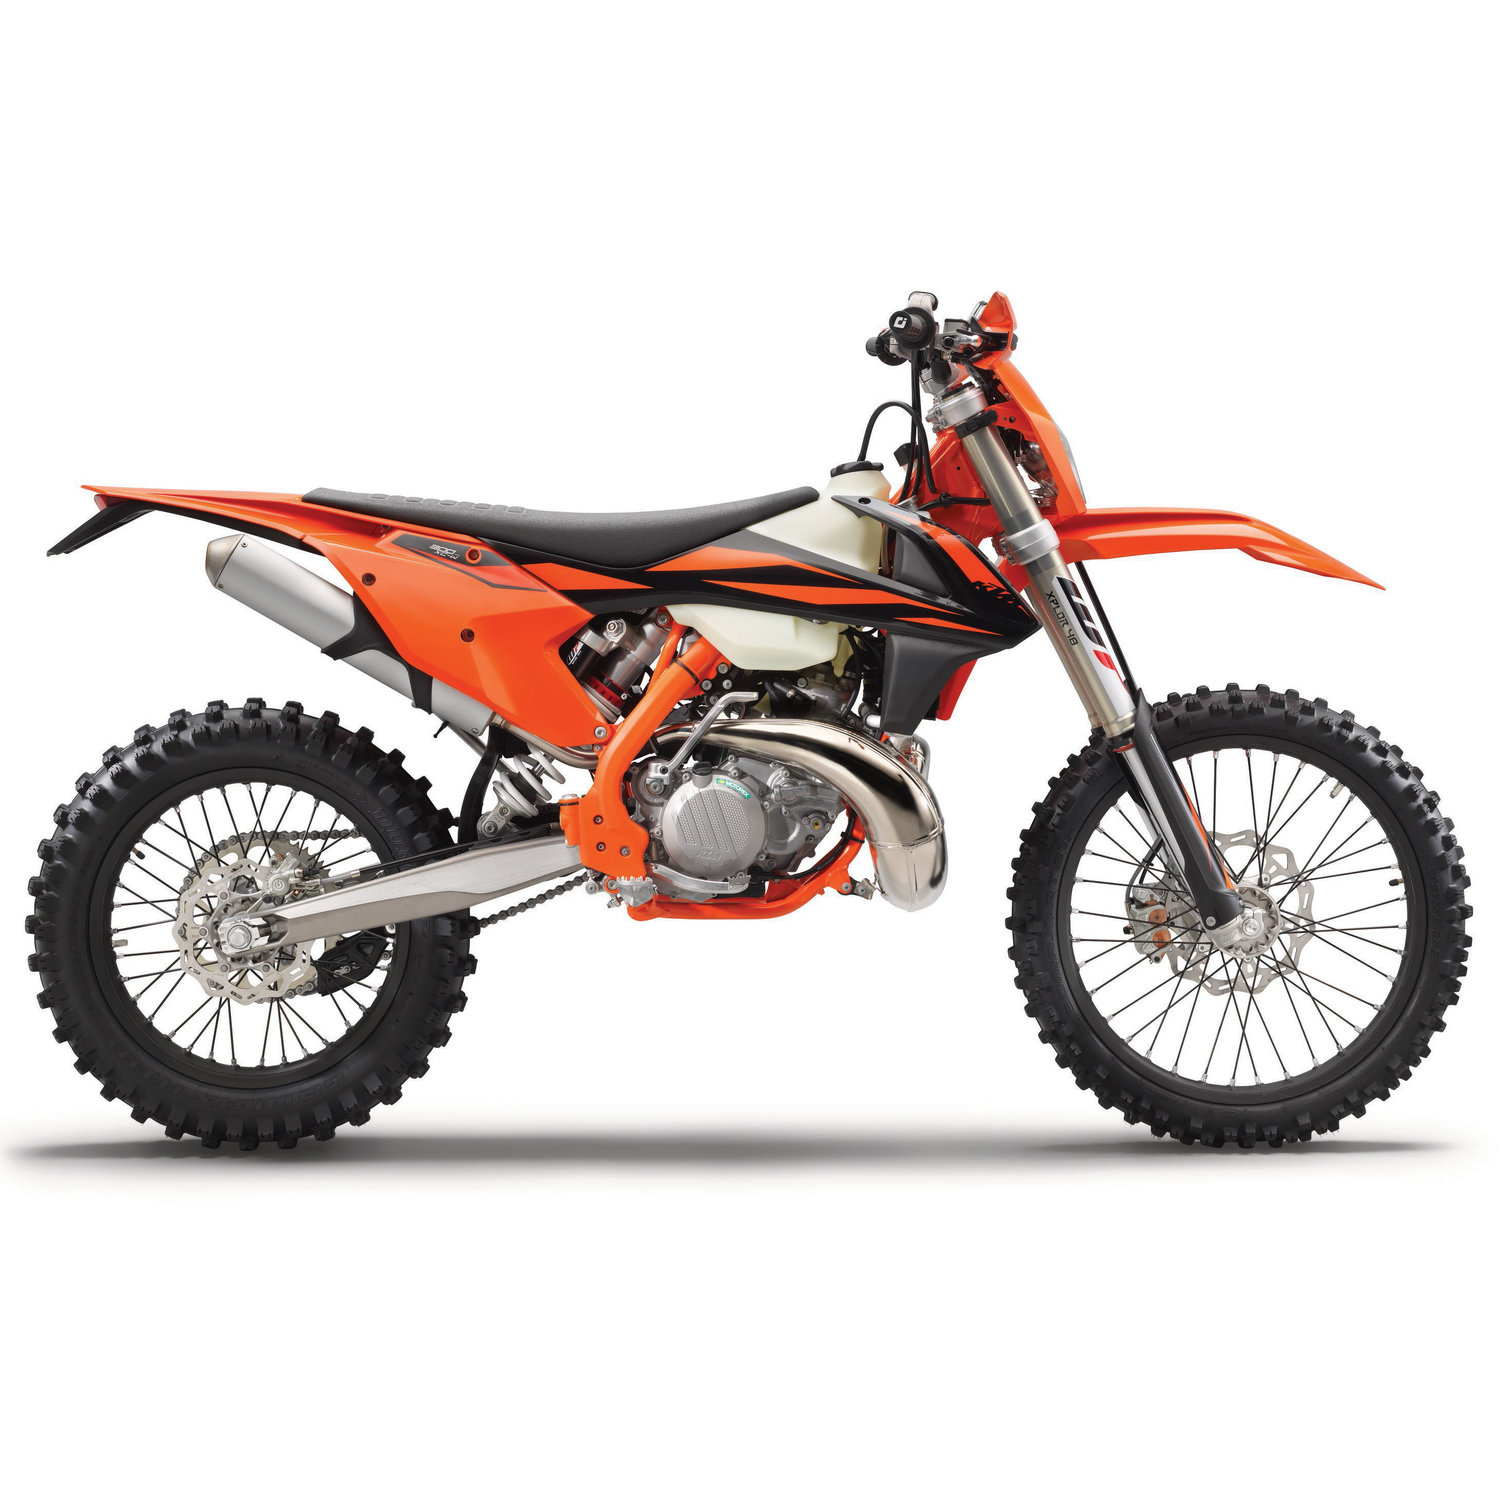 2019 KTM Off-Road Motorcycles First Look